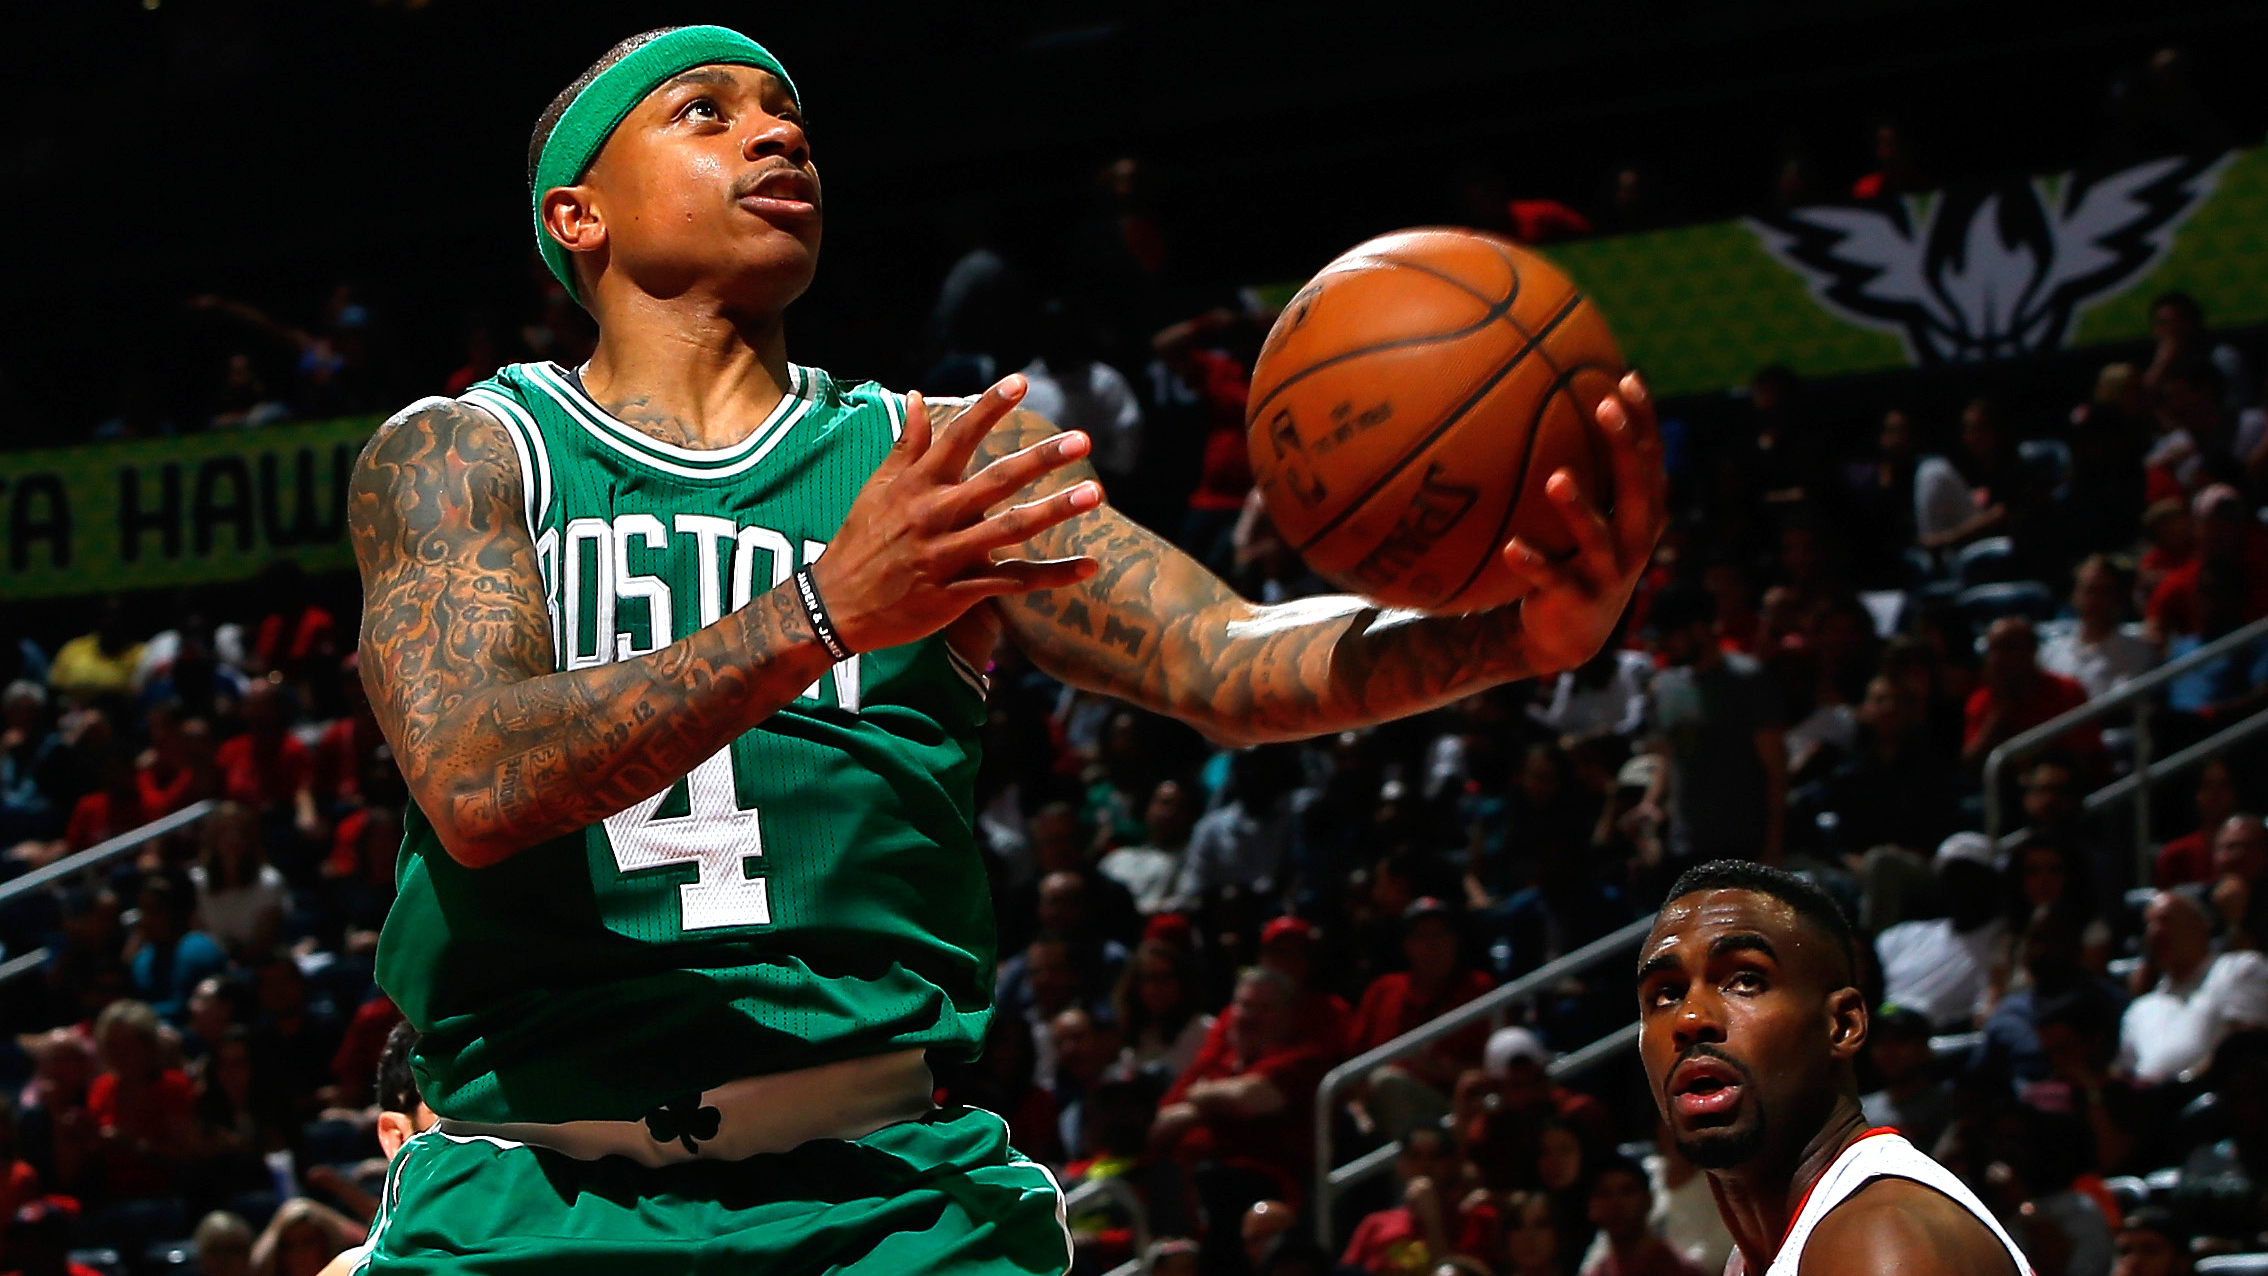 Isaiah Thomas' journey from final draft pick to NBA All-Star — The Undefeated